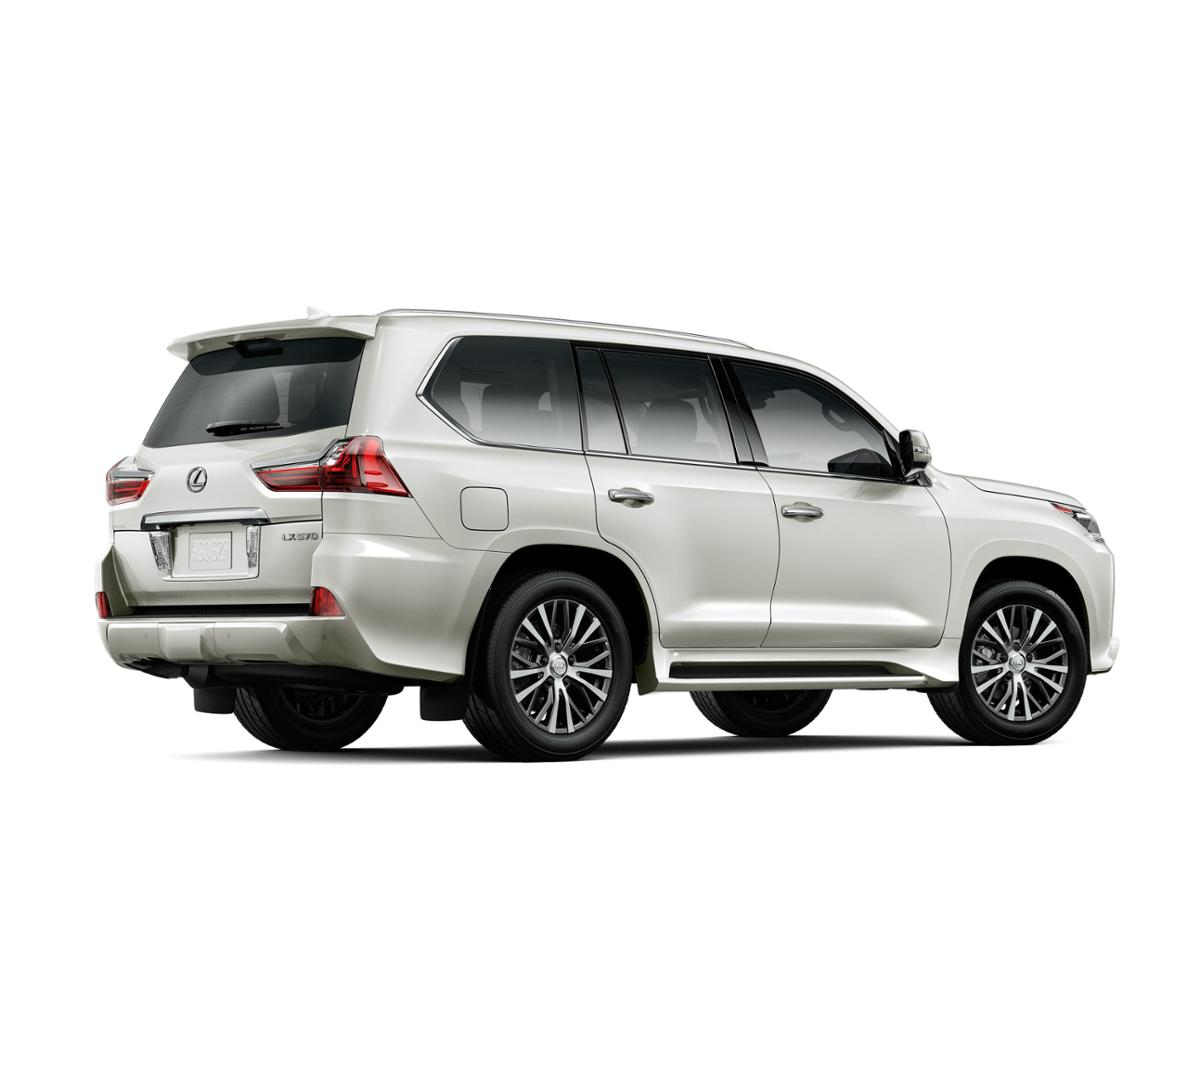 oakland starfire pearl 2017 lexus lx 570 suv for sale 47265. Black Bedroom Furniture Sets. Home Design Ideas